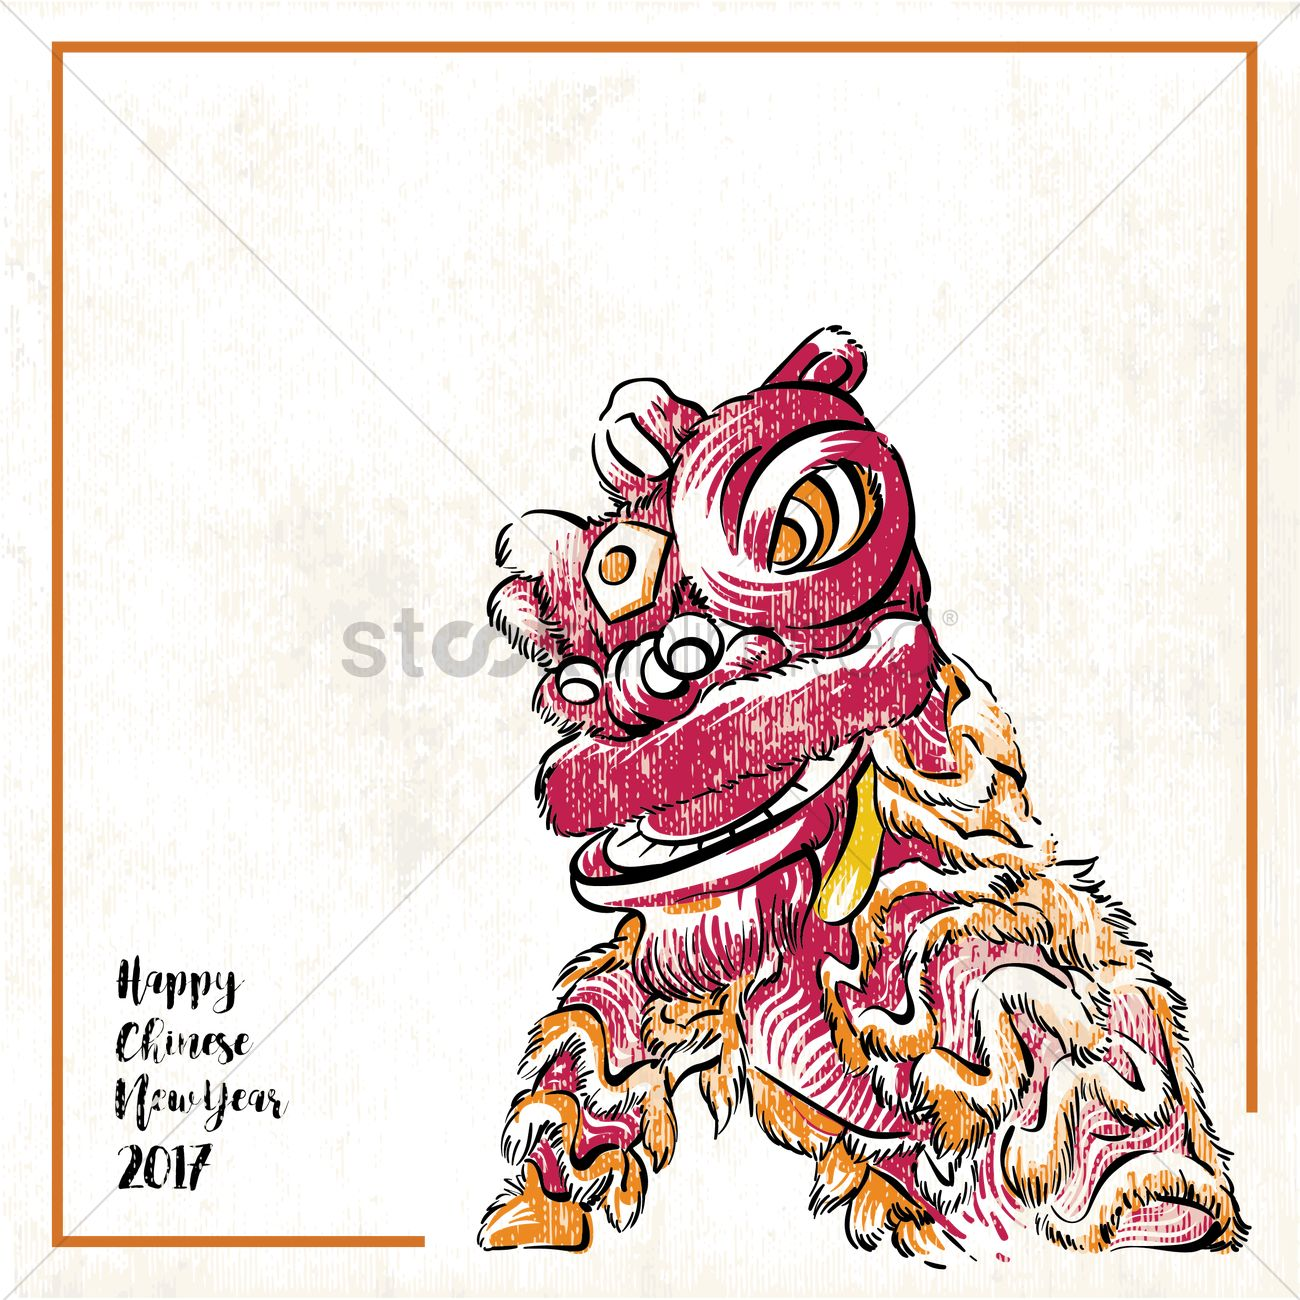 2017 Chinese New Year Greeting With Lion Dance Vector Image